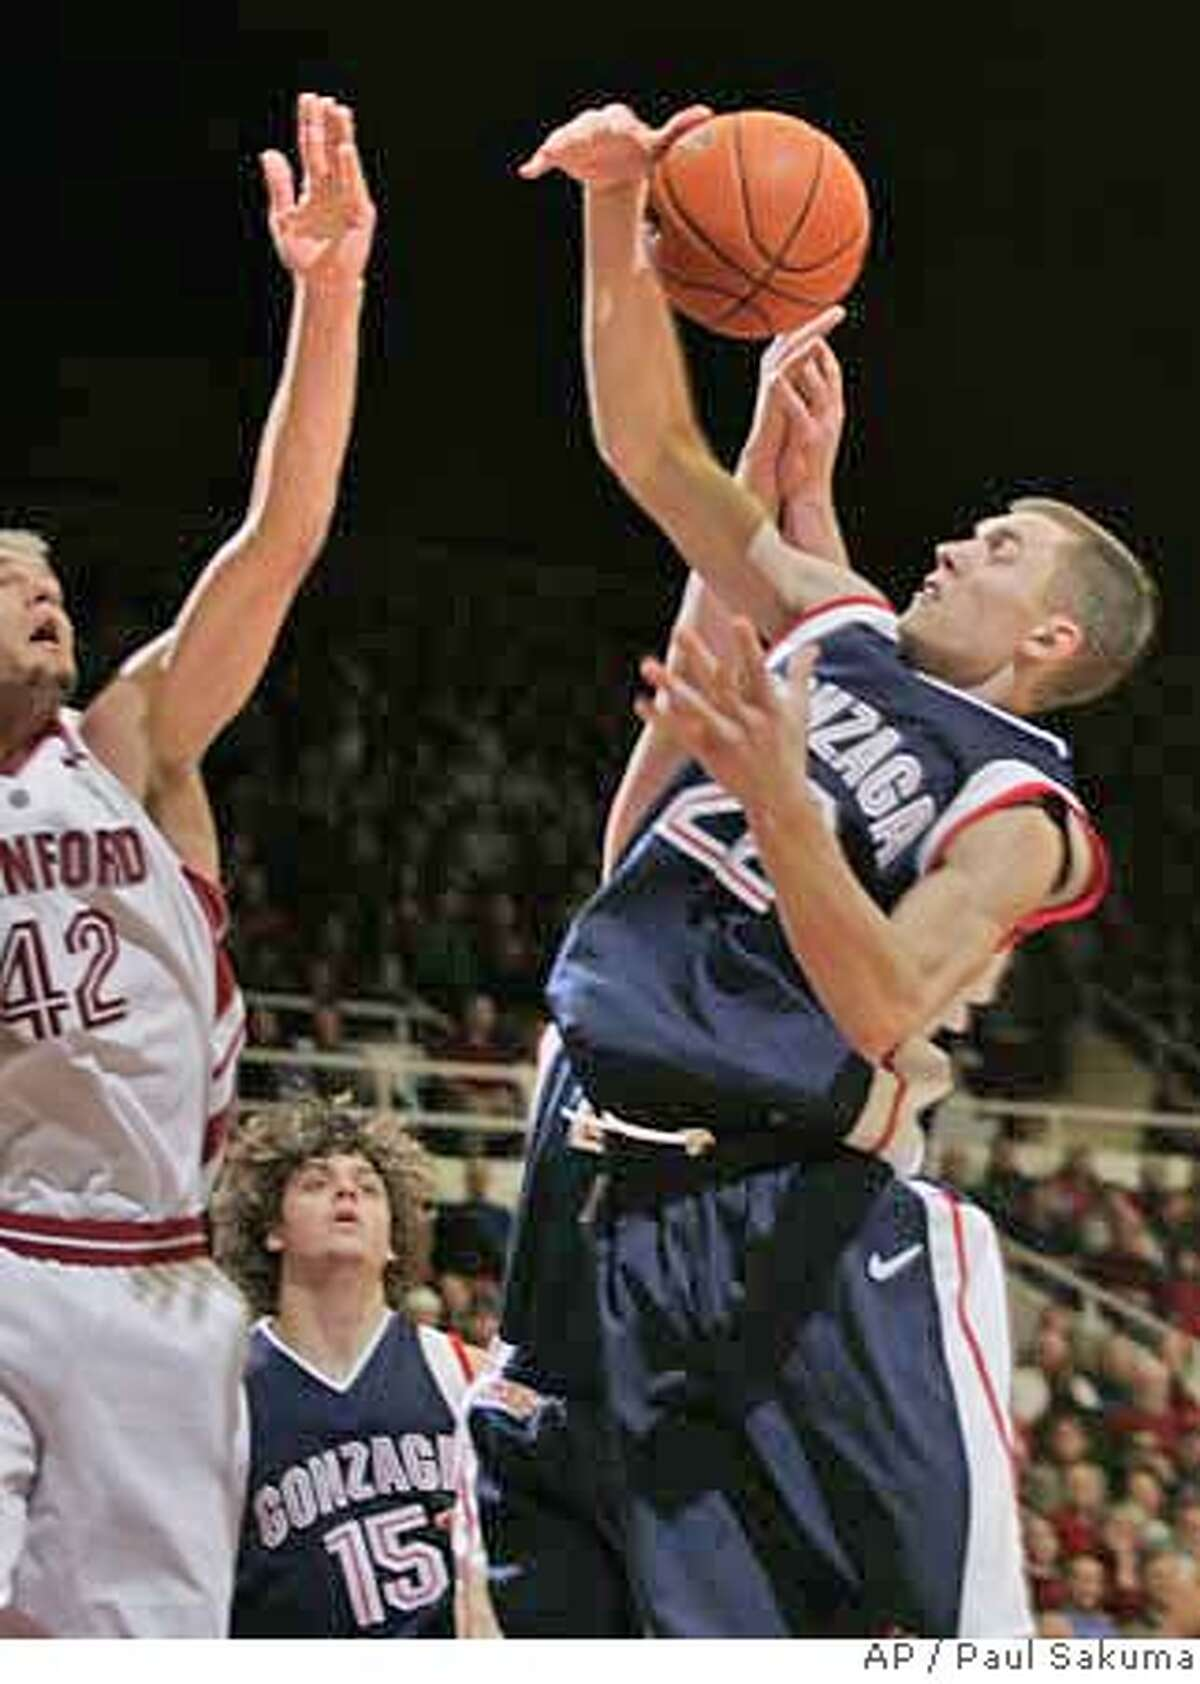 Gonzaga guard Micah Downs (22) and Stanford center Robin Lopez, (42) go for rebound in the first half of their NCAA basketball game in Stanford, Calif., Wednesday, Jan. 31, 2007. (AP Photo/Paul Sakuma)